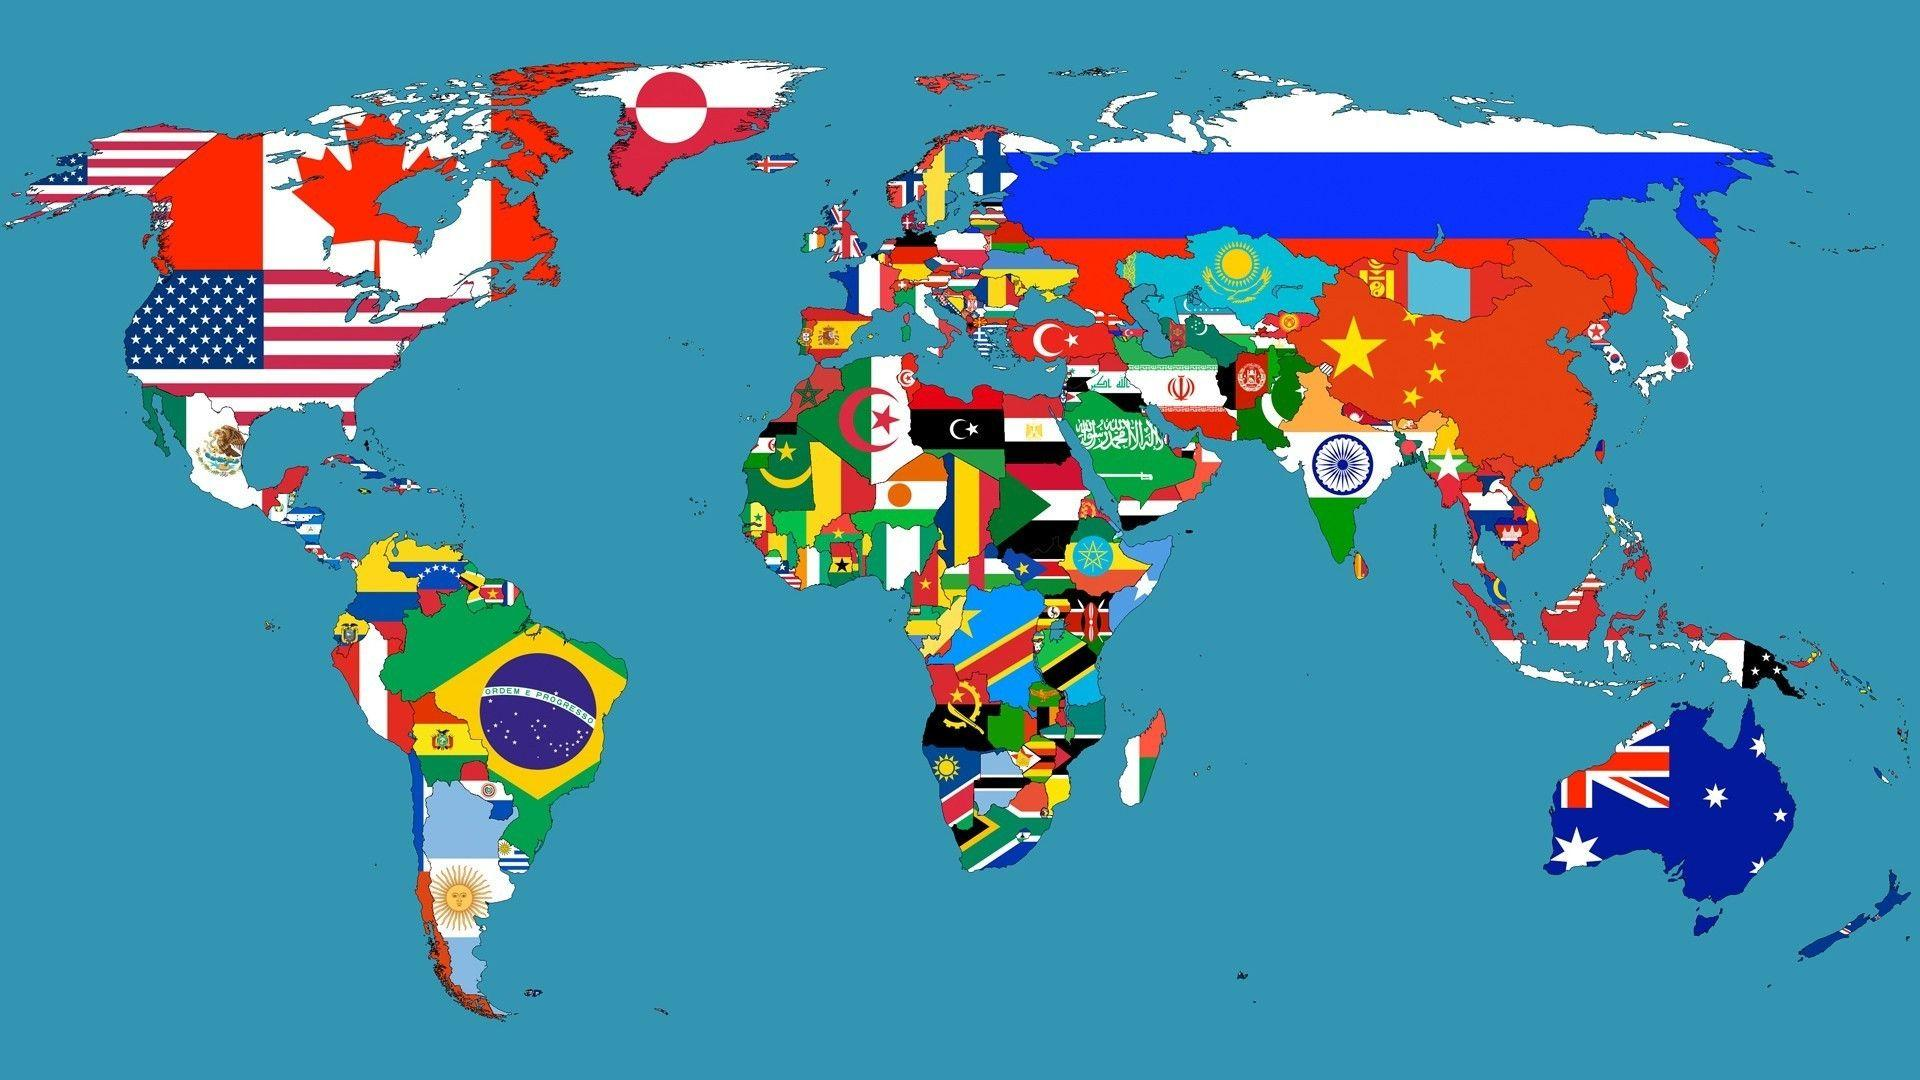 World Map Wallpapers HD 1920x1080 - Wallpaper Cave